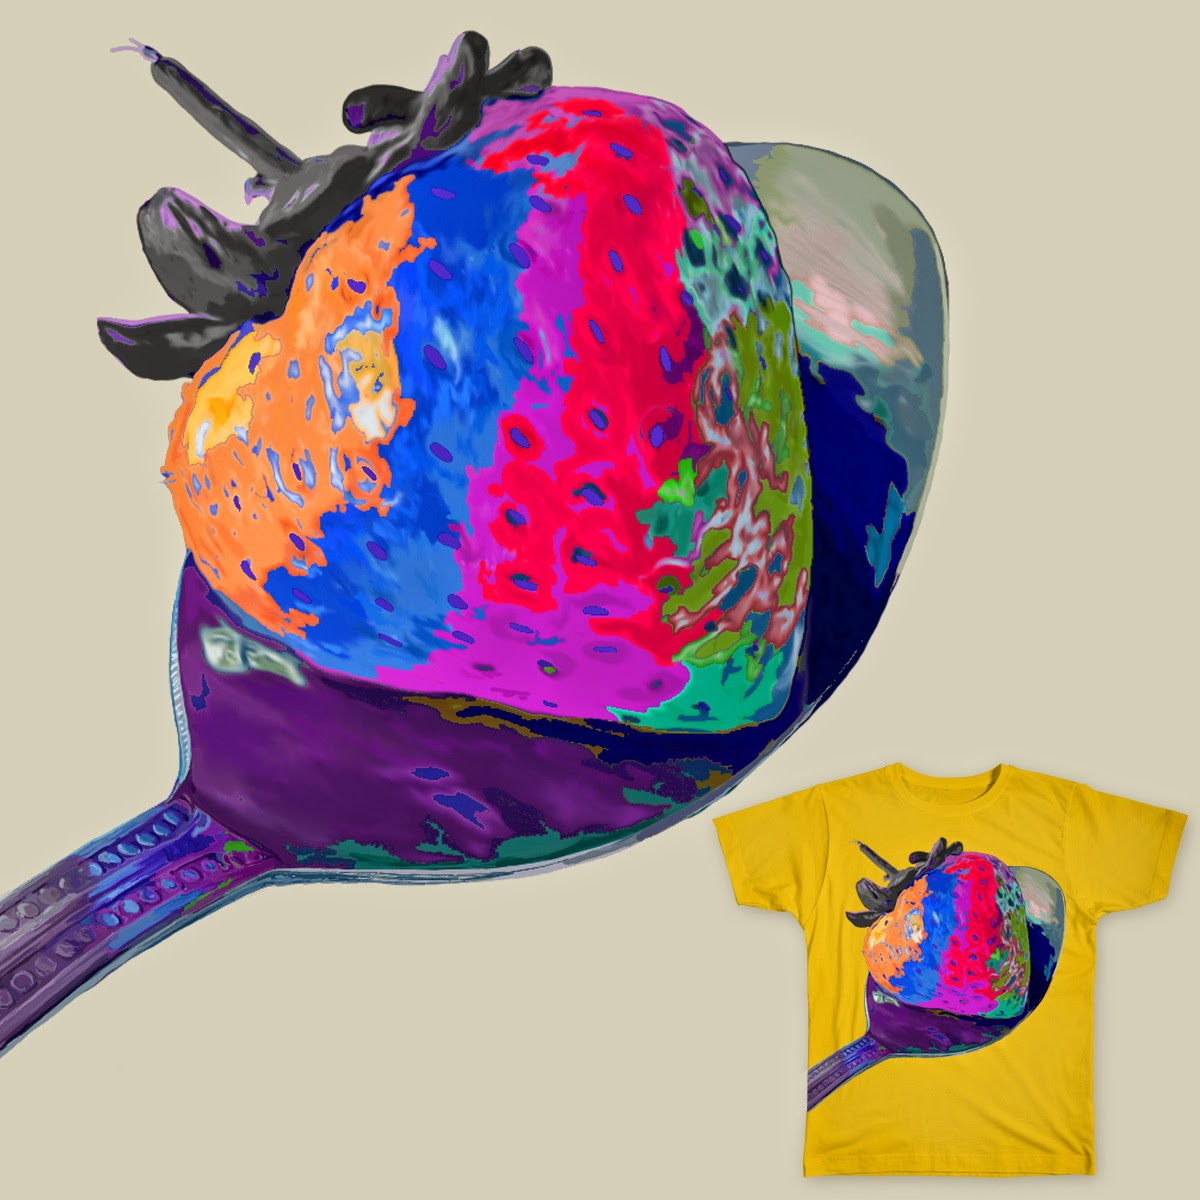 https://www.threadless.com/designs/rainbowberry